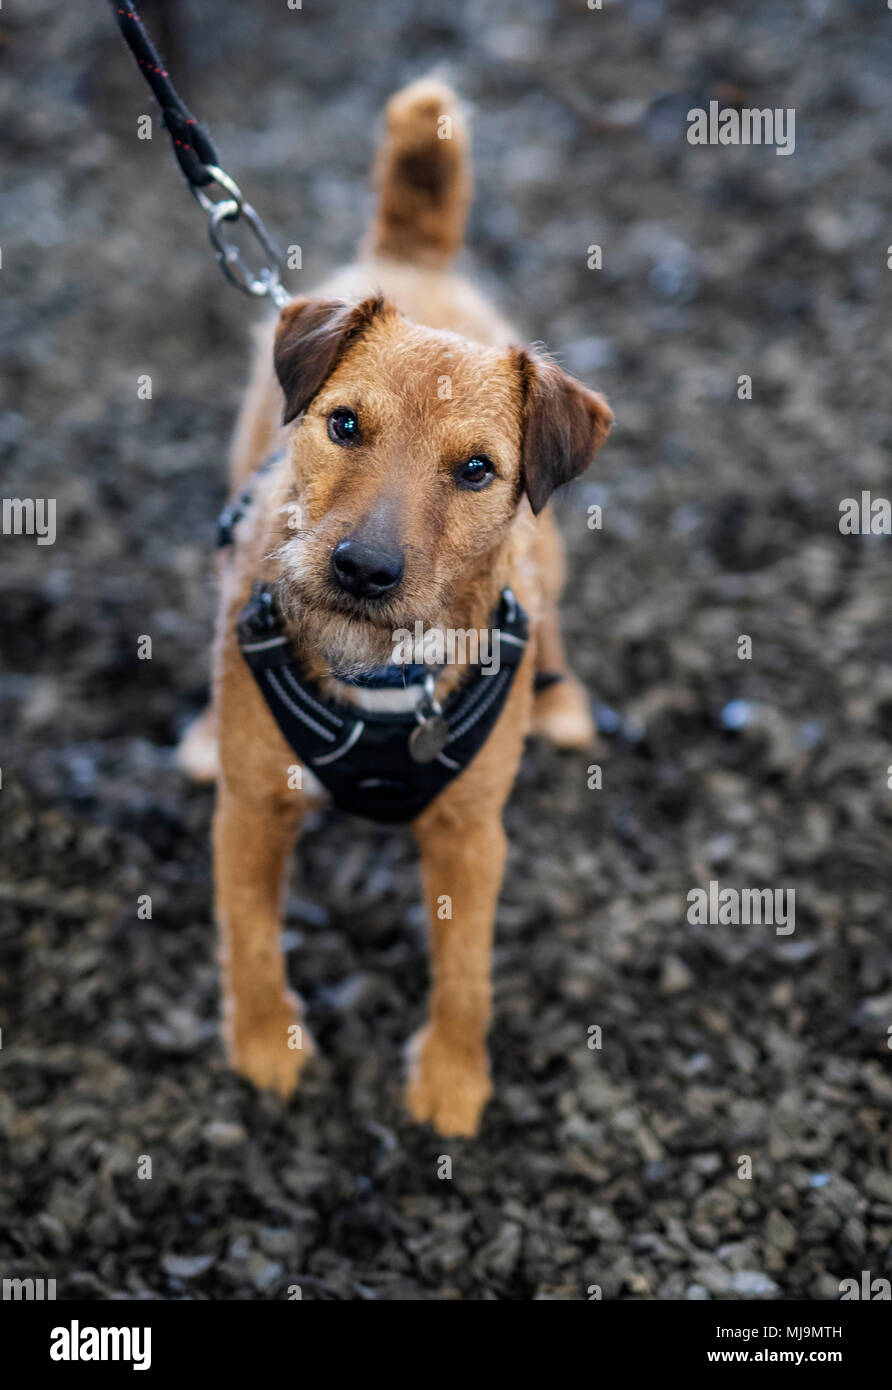 Cute little terrier posing for photo - Stock Image